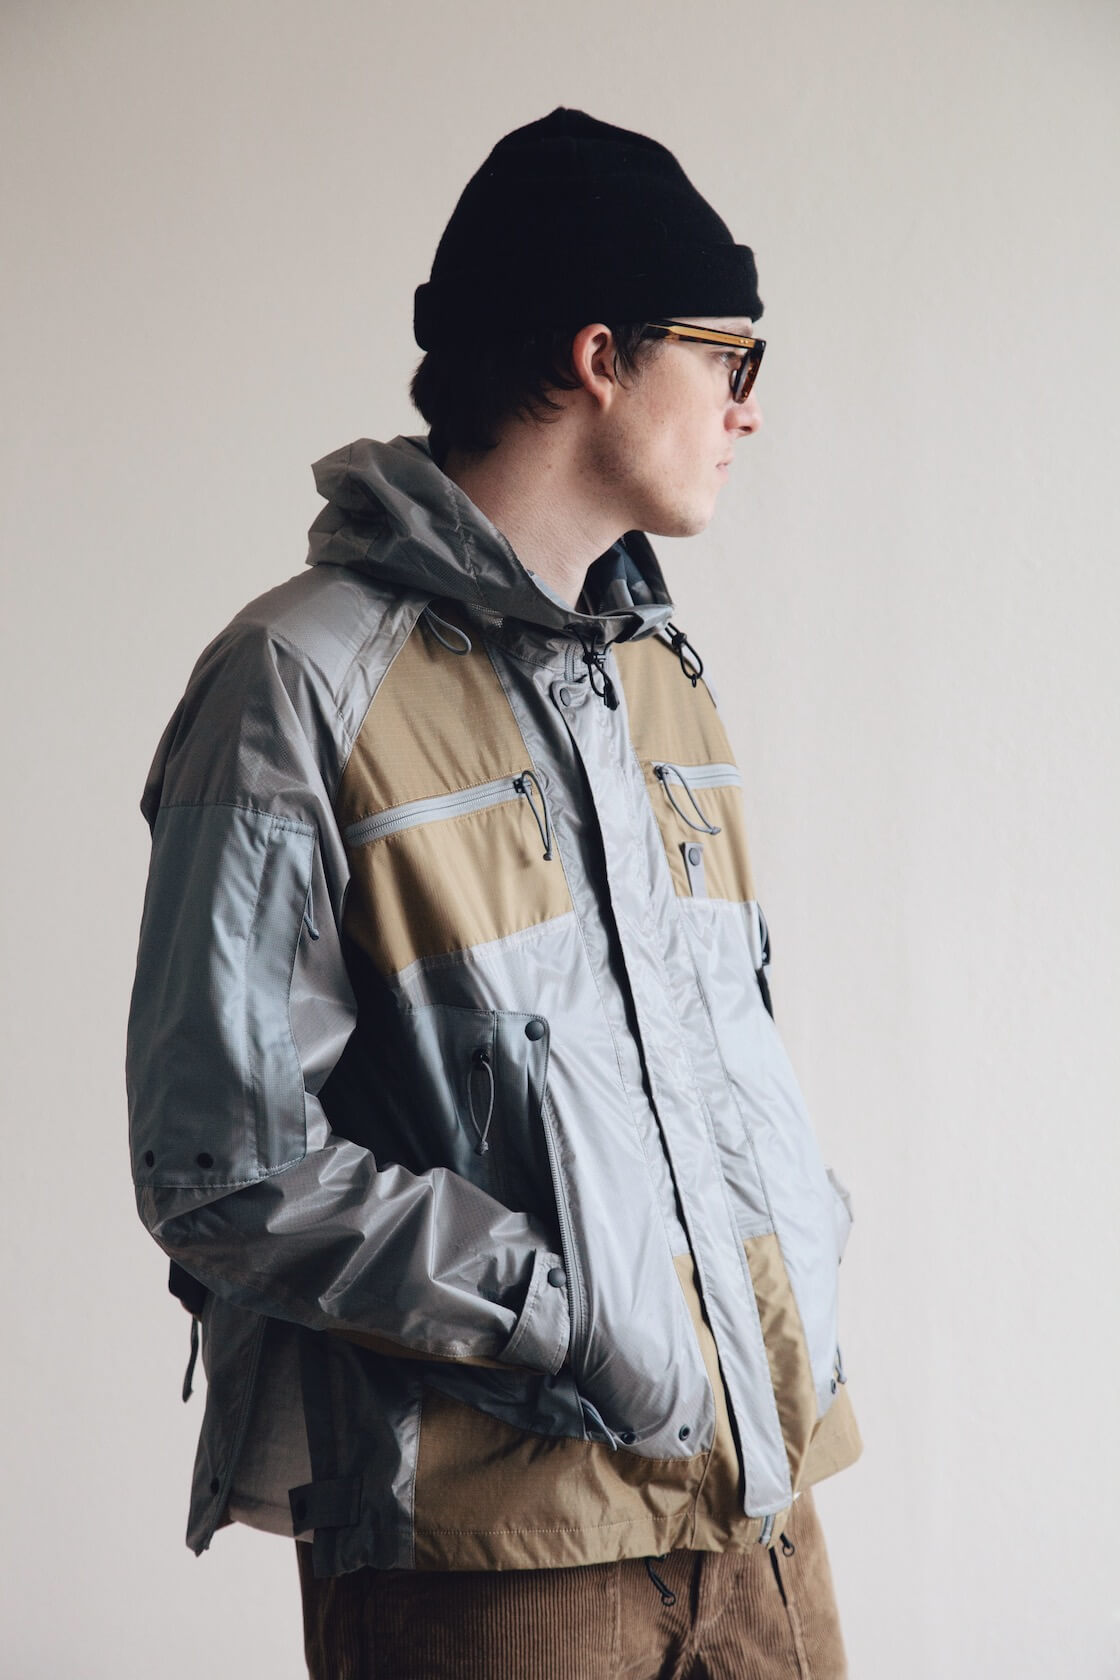 junya watanabe x mystery ranch backpack jacket, lady white co. t-shirt, engineered garments fatigue shorts and engineered garments x sebago overlap shoes on body